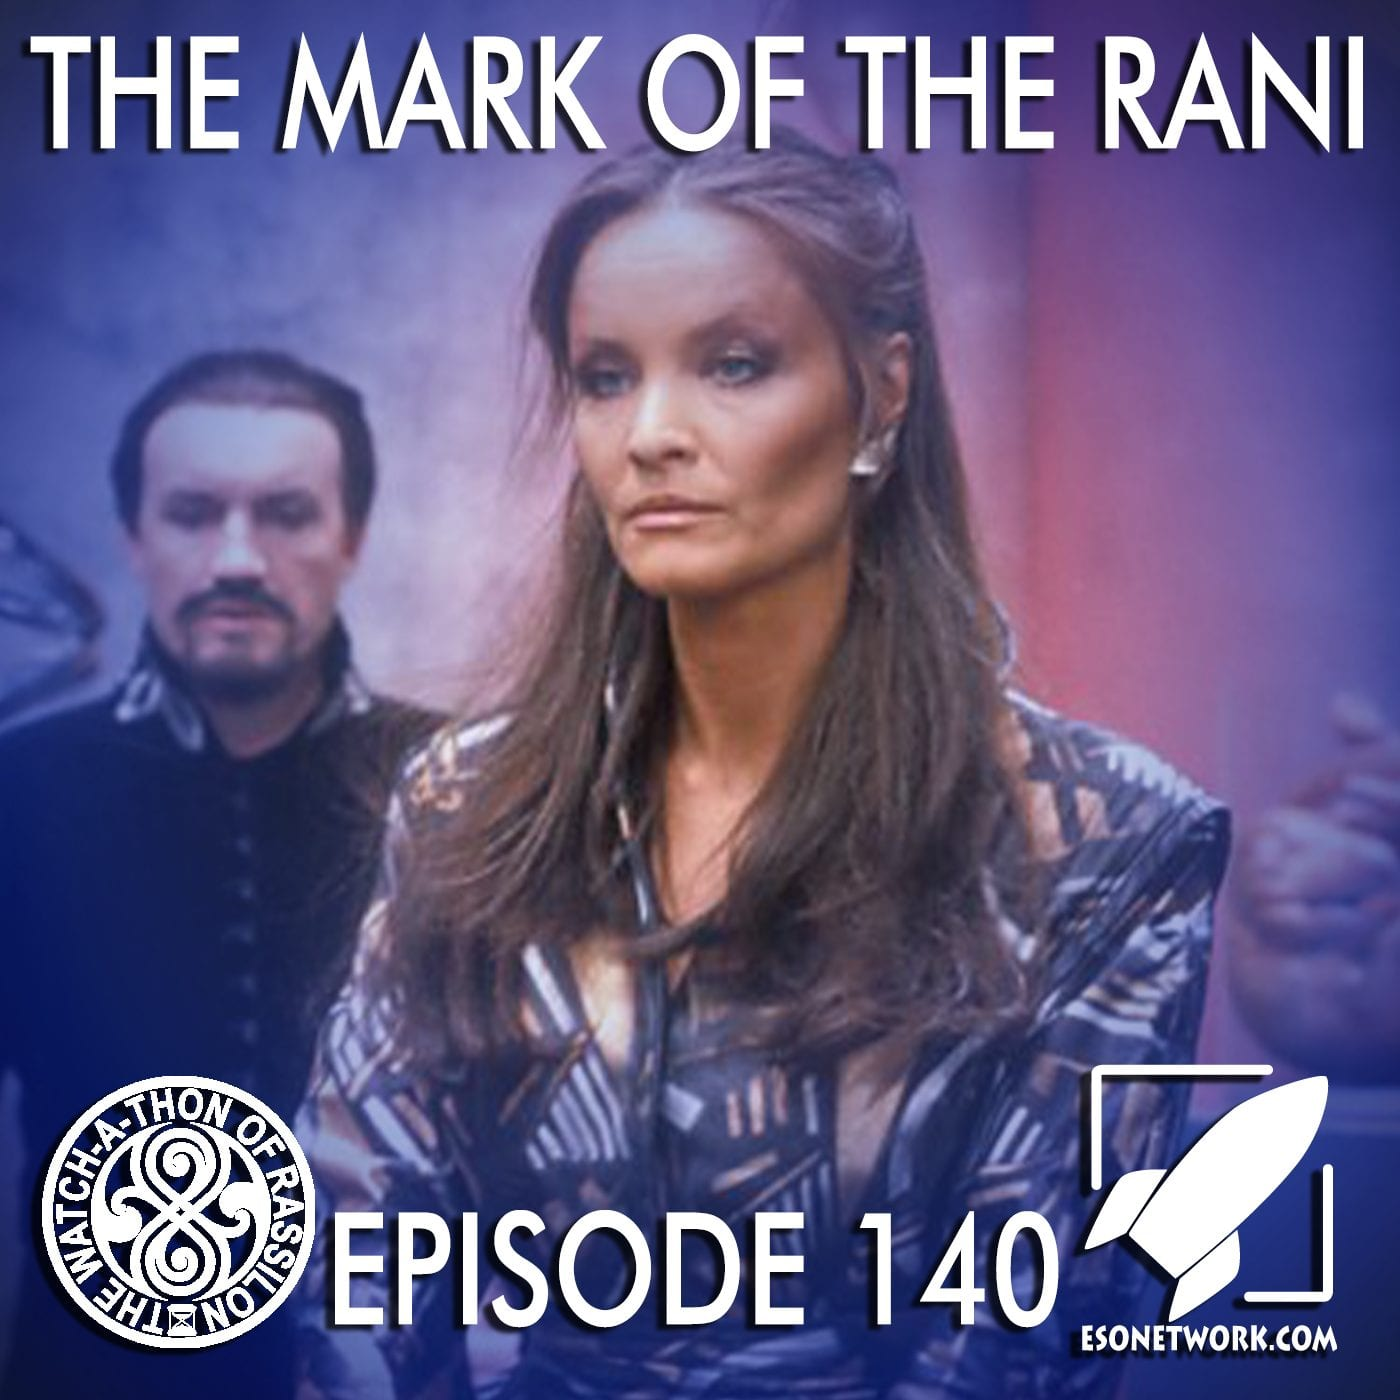 The Watch-A-Thon of Rassilon: Episode 140: The Mark of the Rani